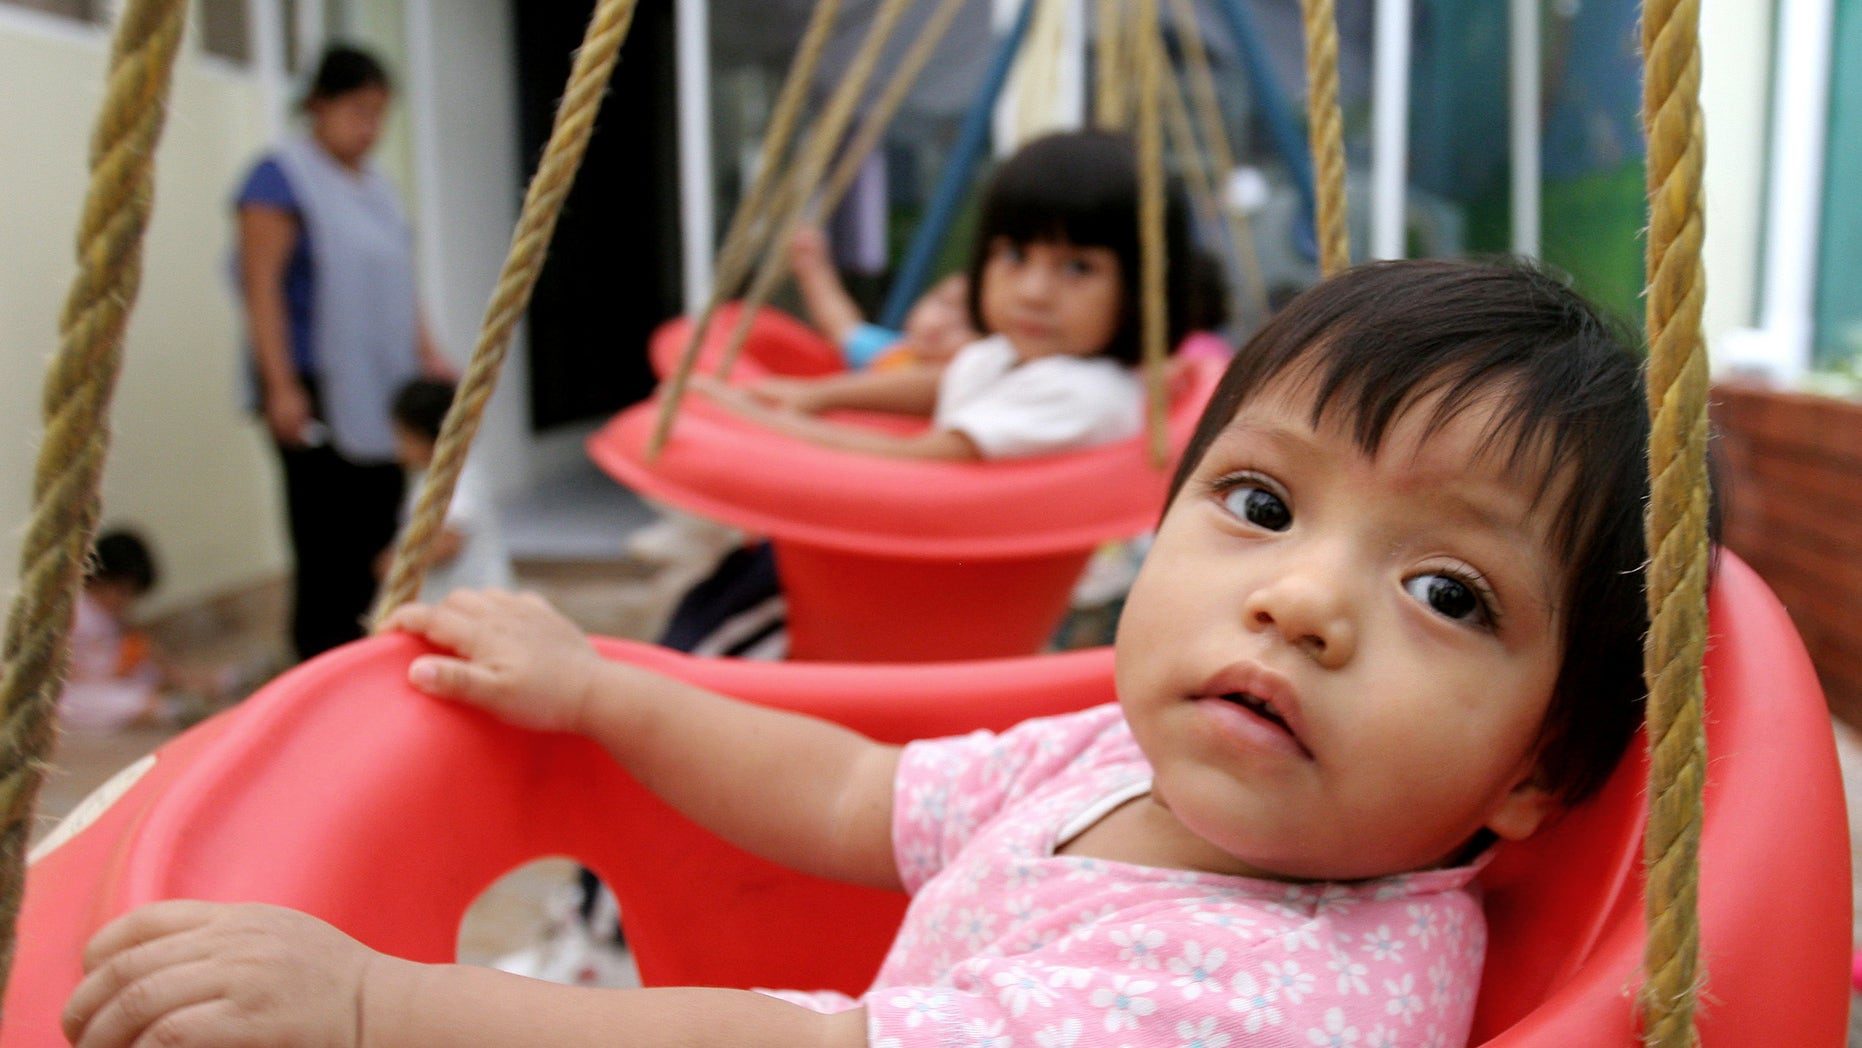 In this June 12, 2006 file photo, children waiting for adoptions are seen in a house held by a lawyer specialized in adoptions in Guatemala City, Guatemala. The number of international adoptions has plummeted to its lowest point in 15 years, a steep decline attributed largely to crackdowns against baby-selling, a sputtering world economy and efforts by countries to place more children with domestic families. (AP Photo/Alexandre Meneghini, File)